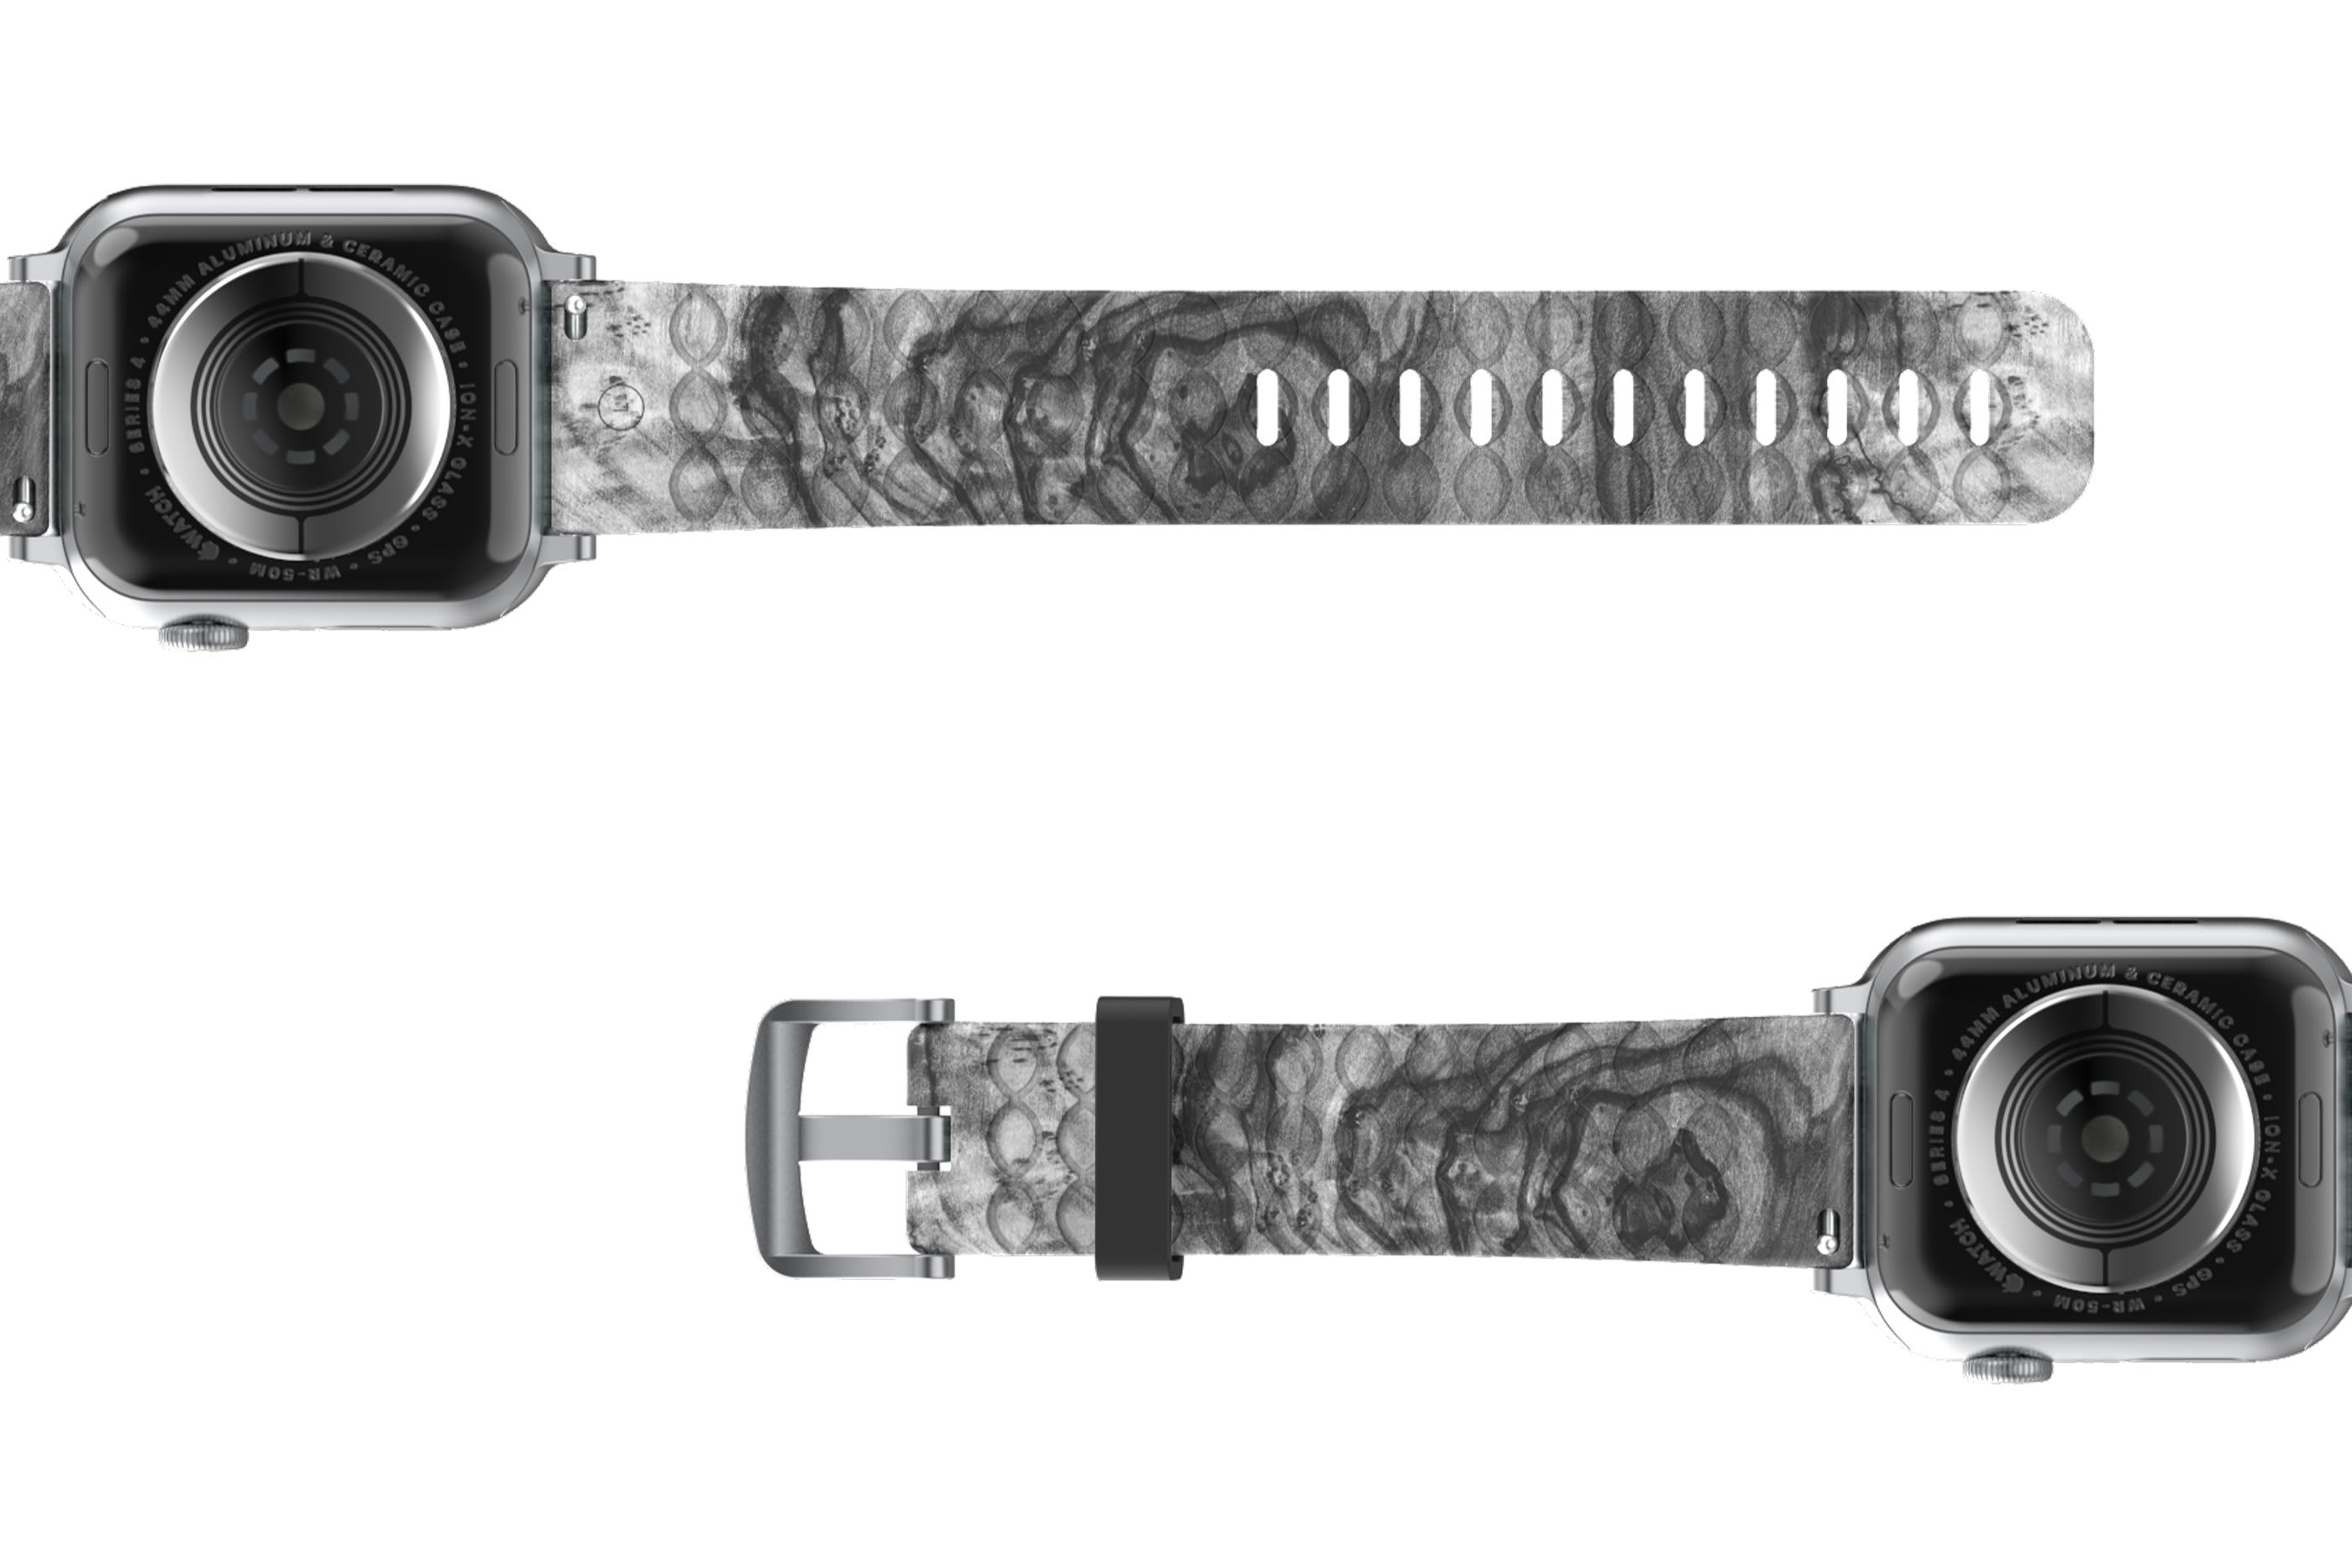 Nomad Relic Apple Watch Band with silver hardware viewed bottom up